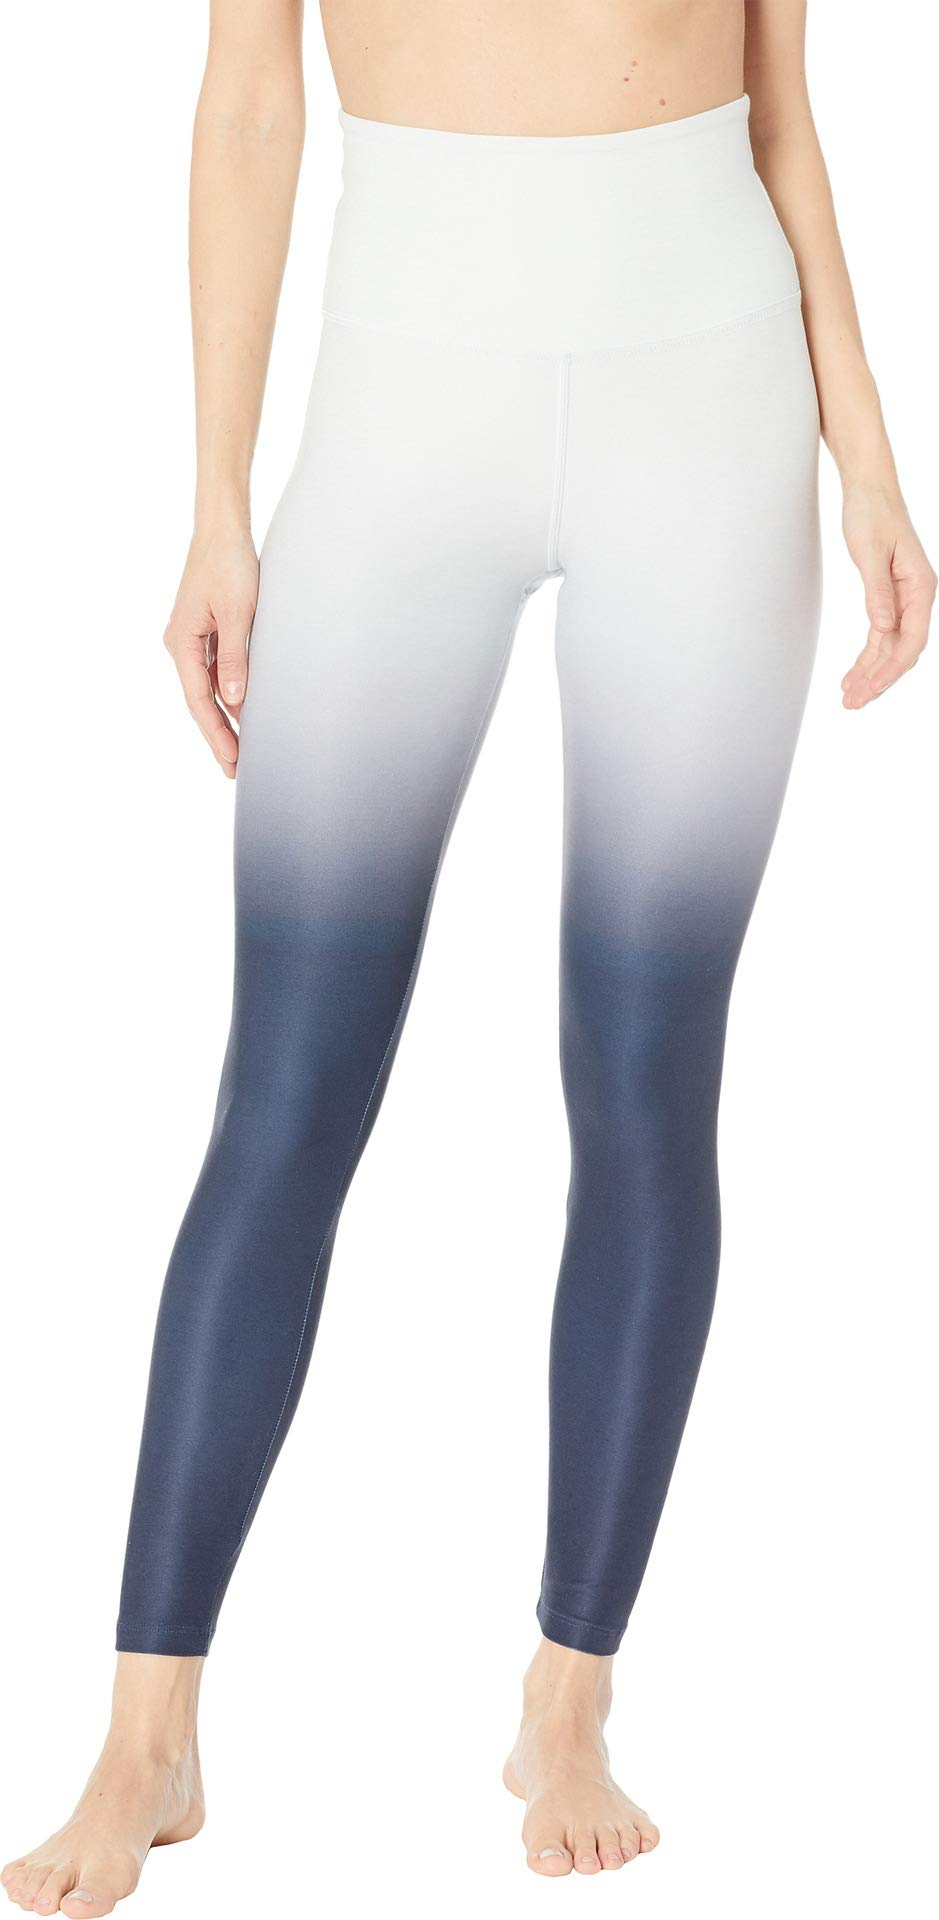 Beyond Yoga Spacedye High Waist Ombre Midi Legging, Glacier White Nocturnal Navy Ombre, X-Small